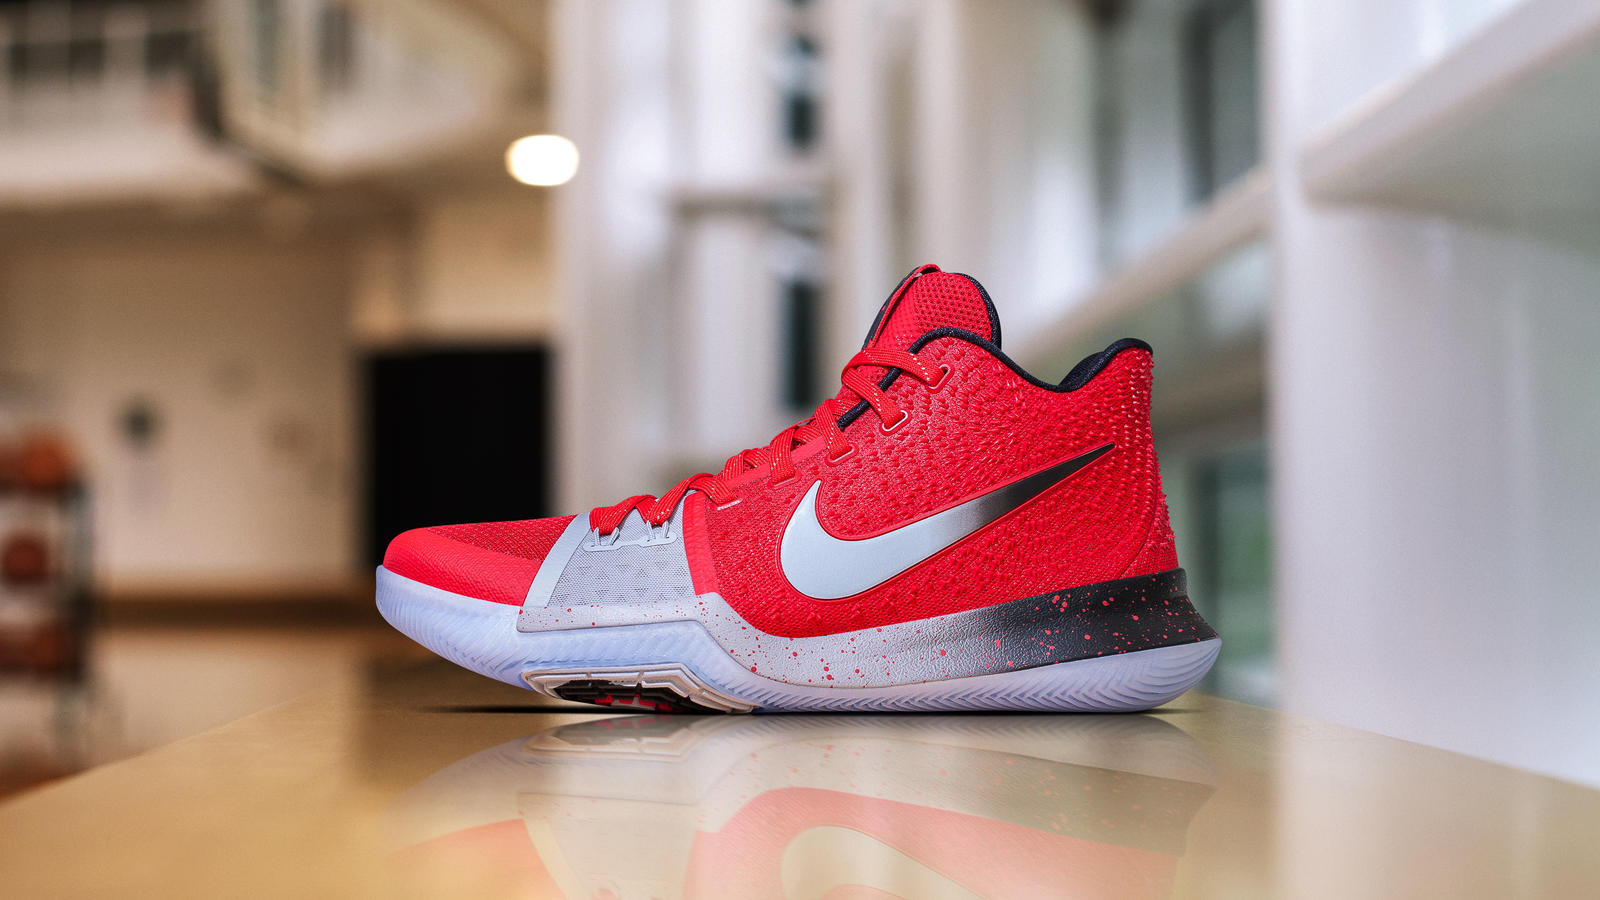 super popular 1d938 6ee3b New Nike Kyrie 3 PE - That Means You Can't Get It - WearTesters